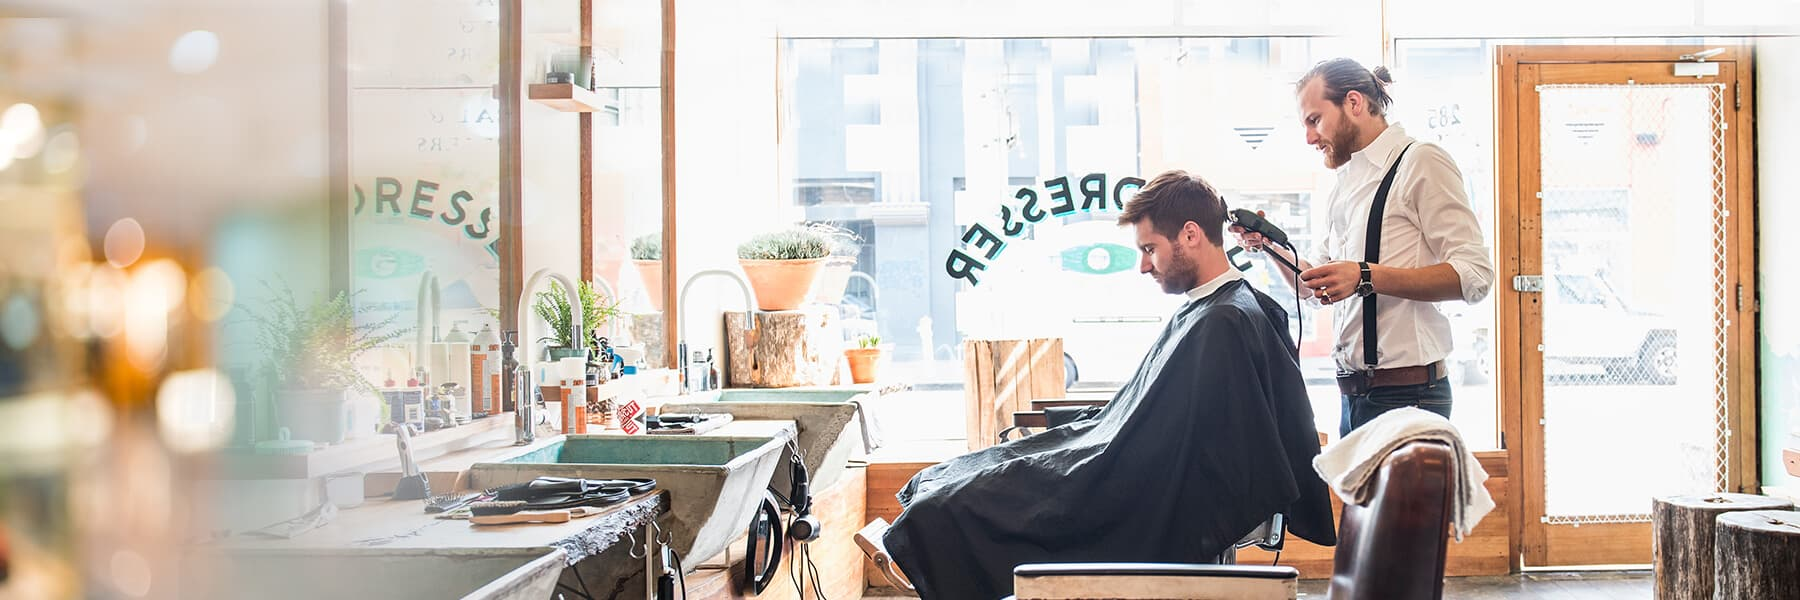 Young man with beard looks down while seated in barber shop chair getting haircut from a young barber in suspenders